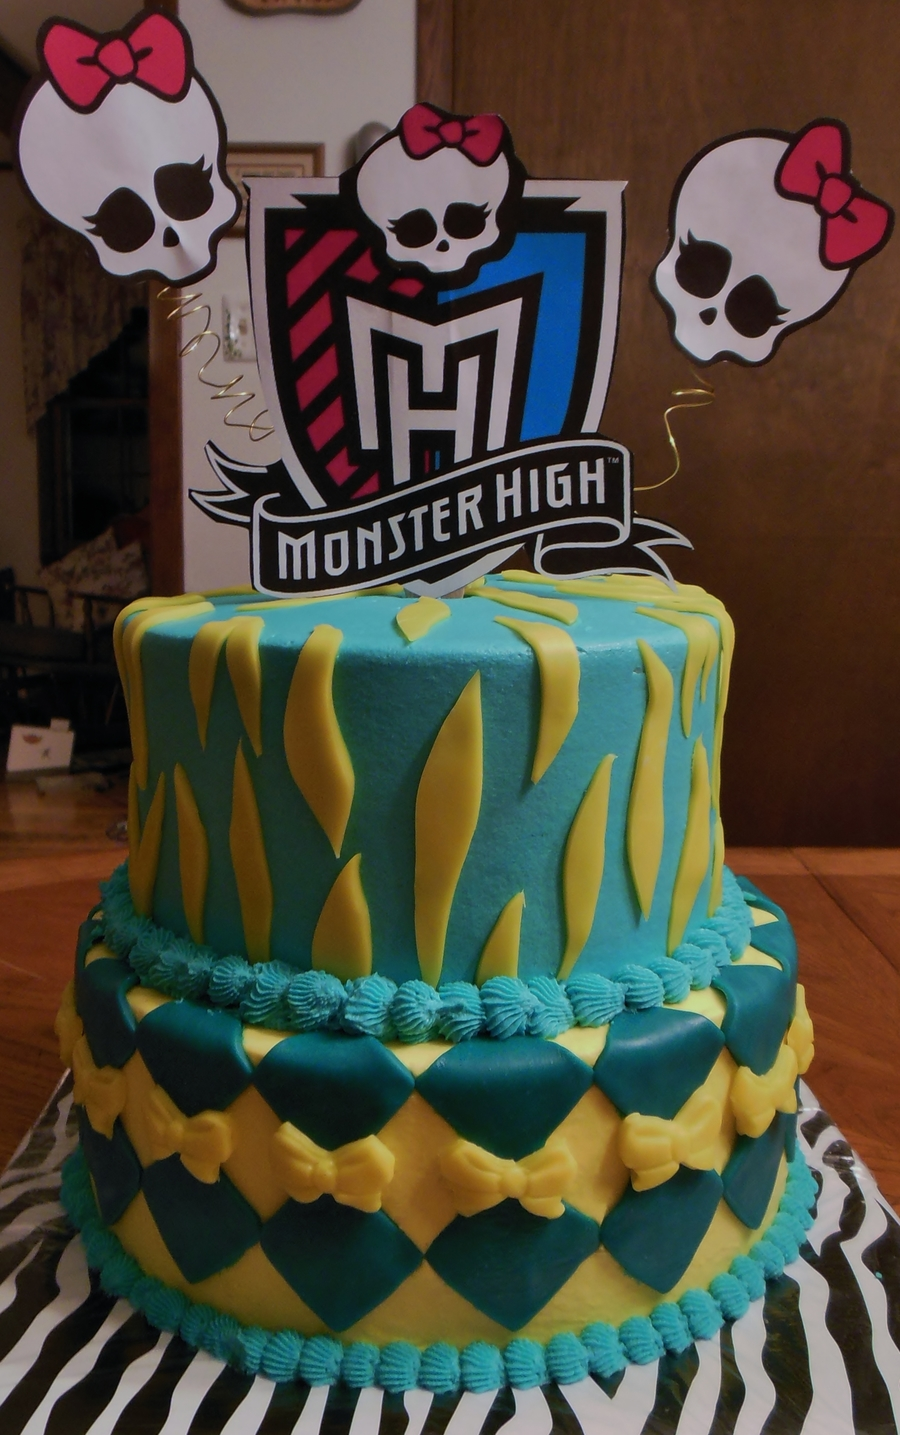 Monster High Cake Birthday Girl Cant Have Red Dye So Had To Limit The Color Of The Icingfondant on Cake Central